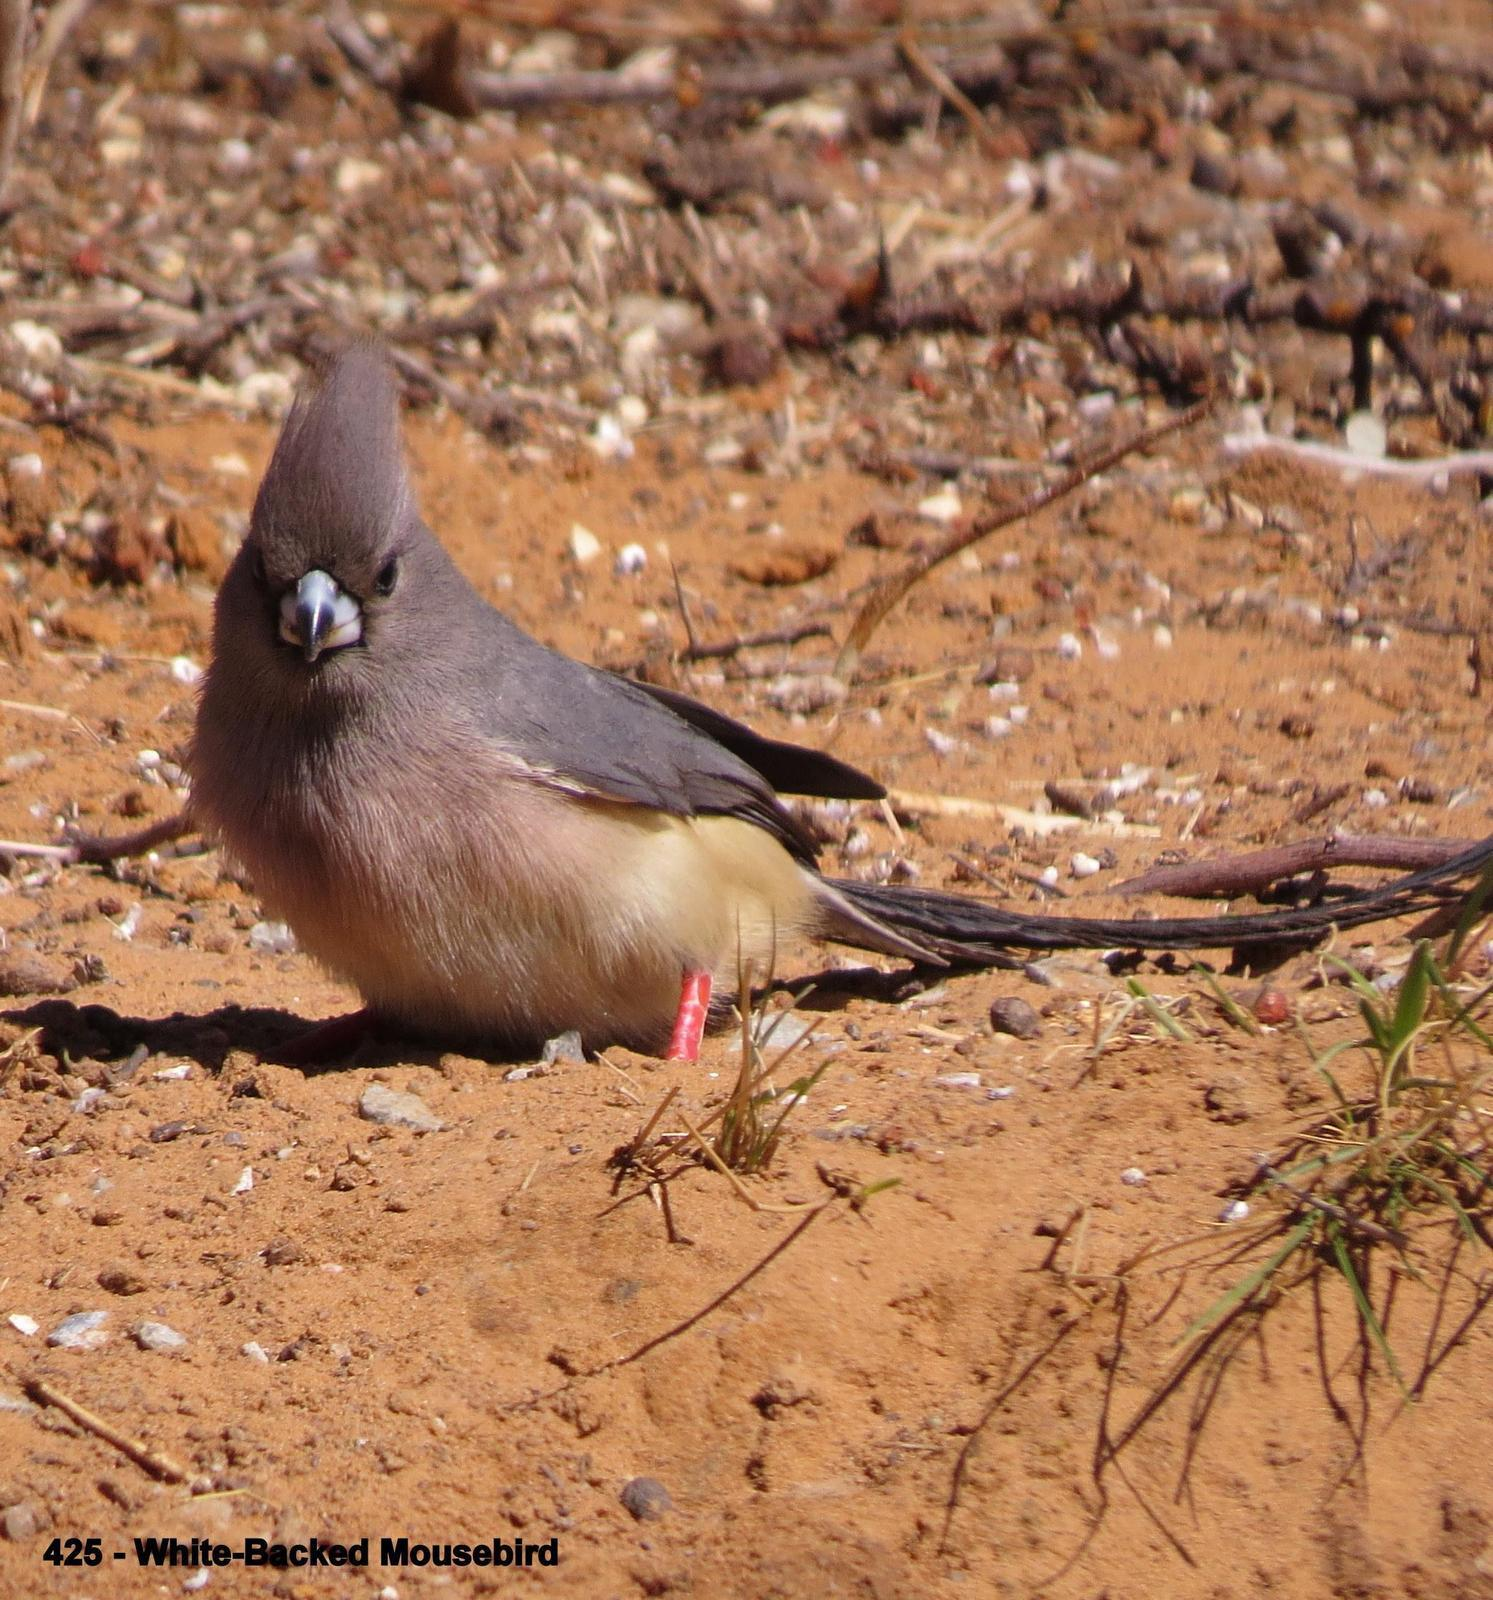 White-backed Mousebird Photo by Richard  Lowe